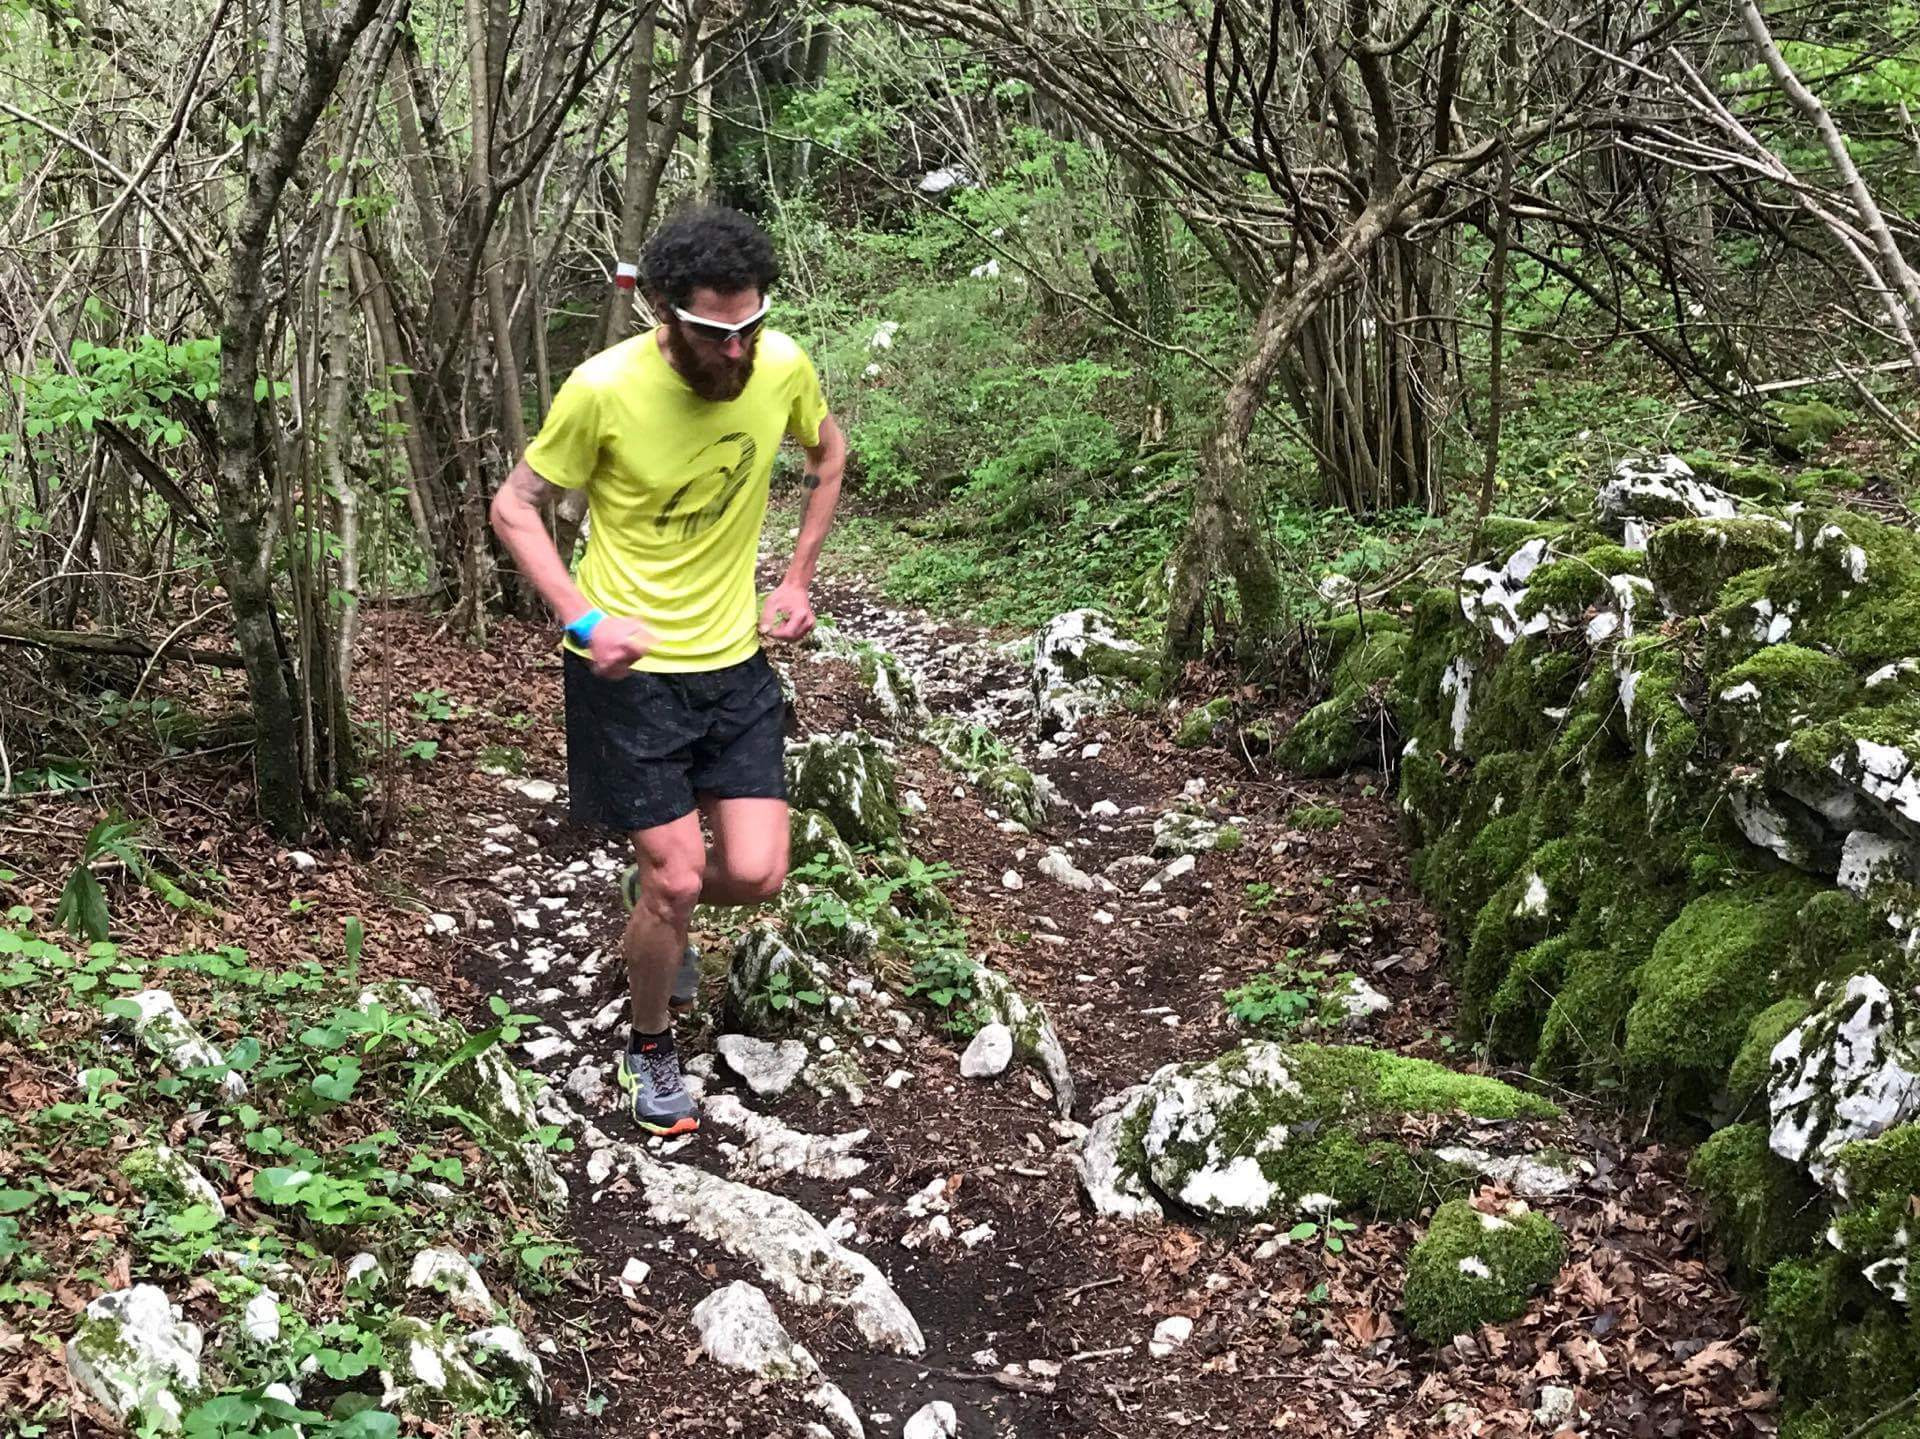 Daniele Cesconetto in trail